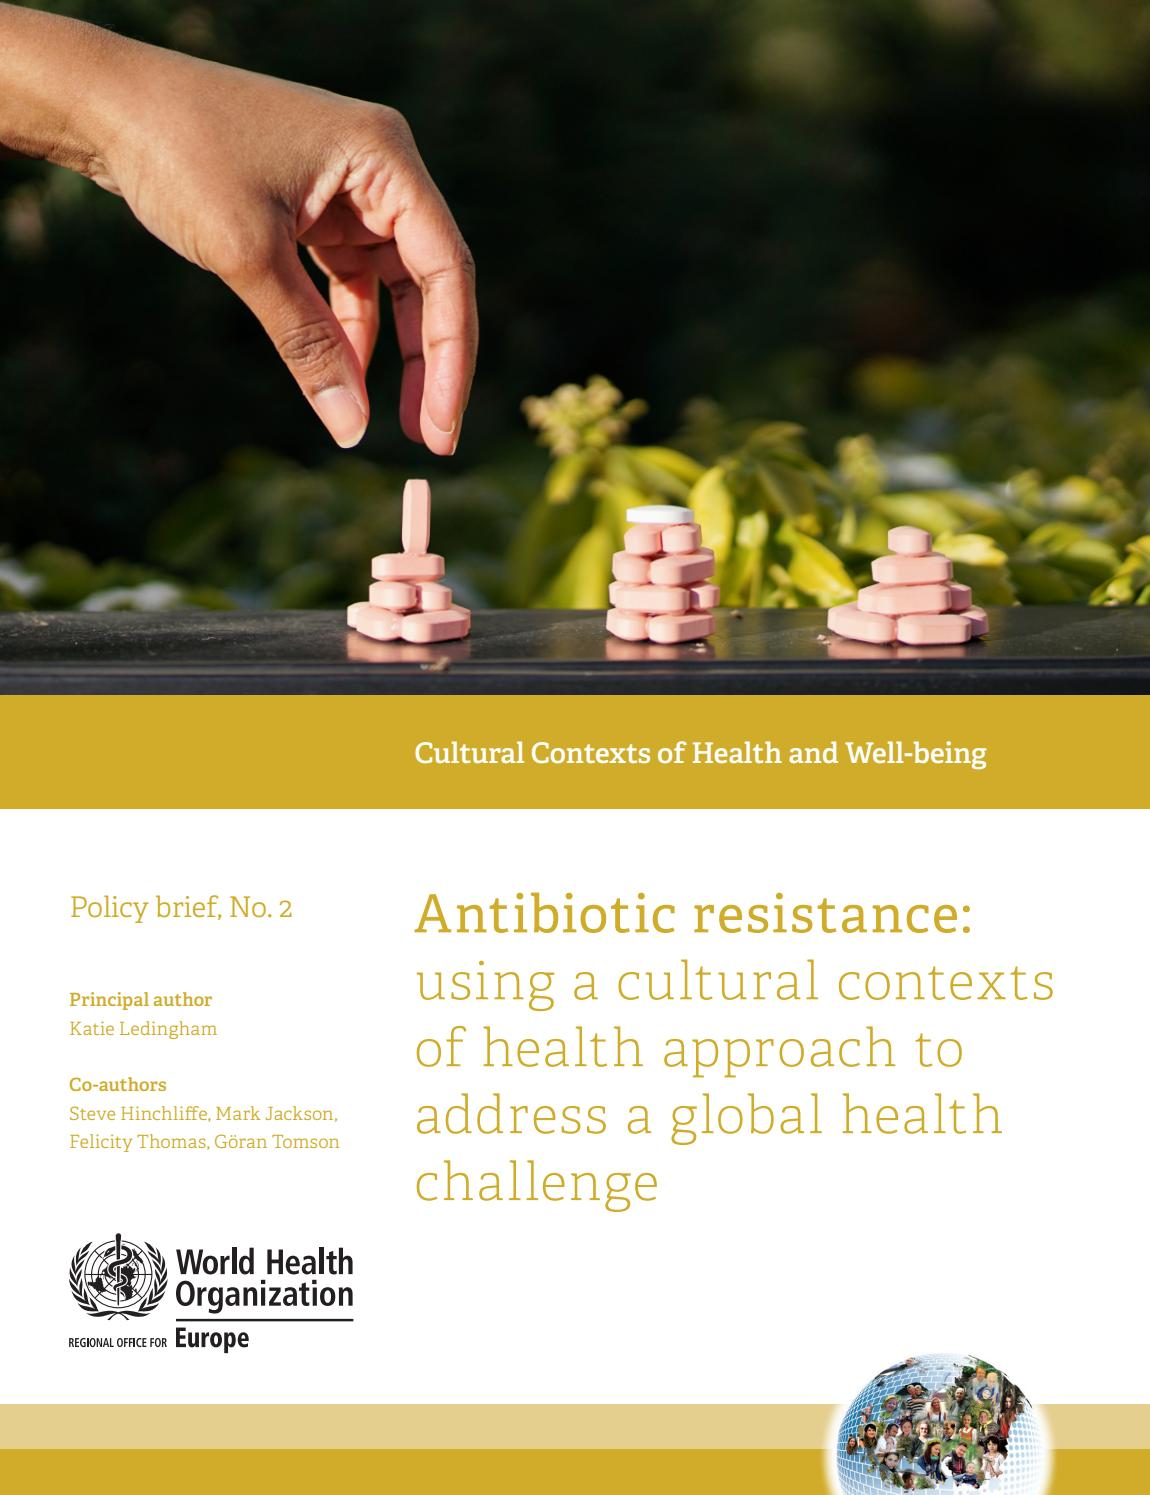 Antibiotic resistance: a cultural contexts of health